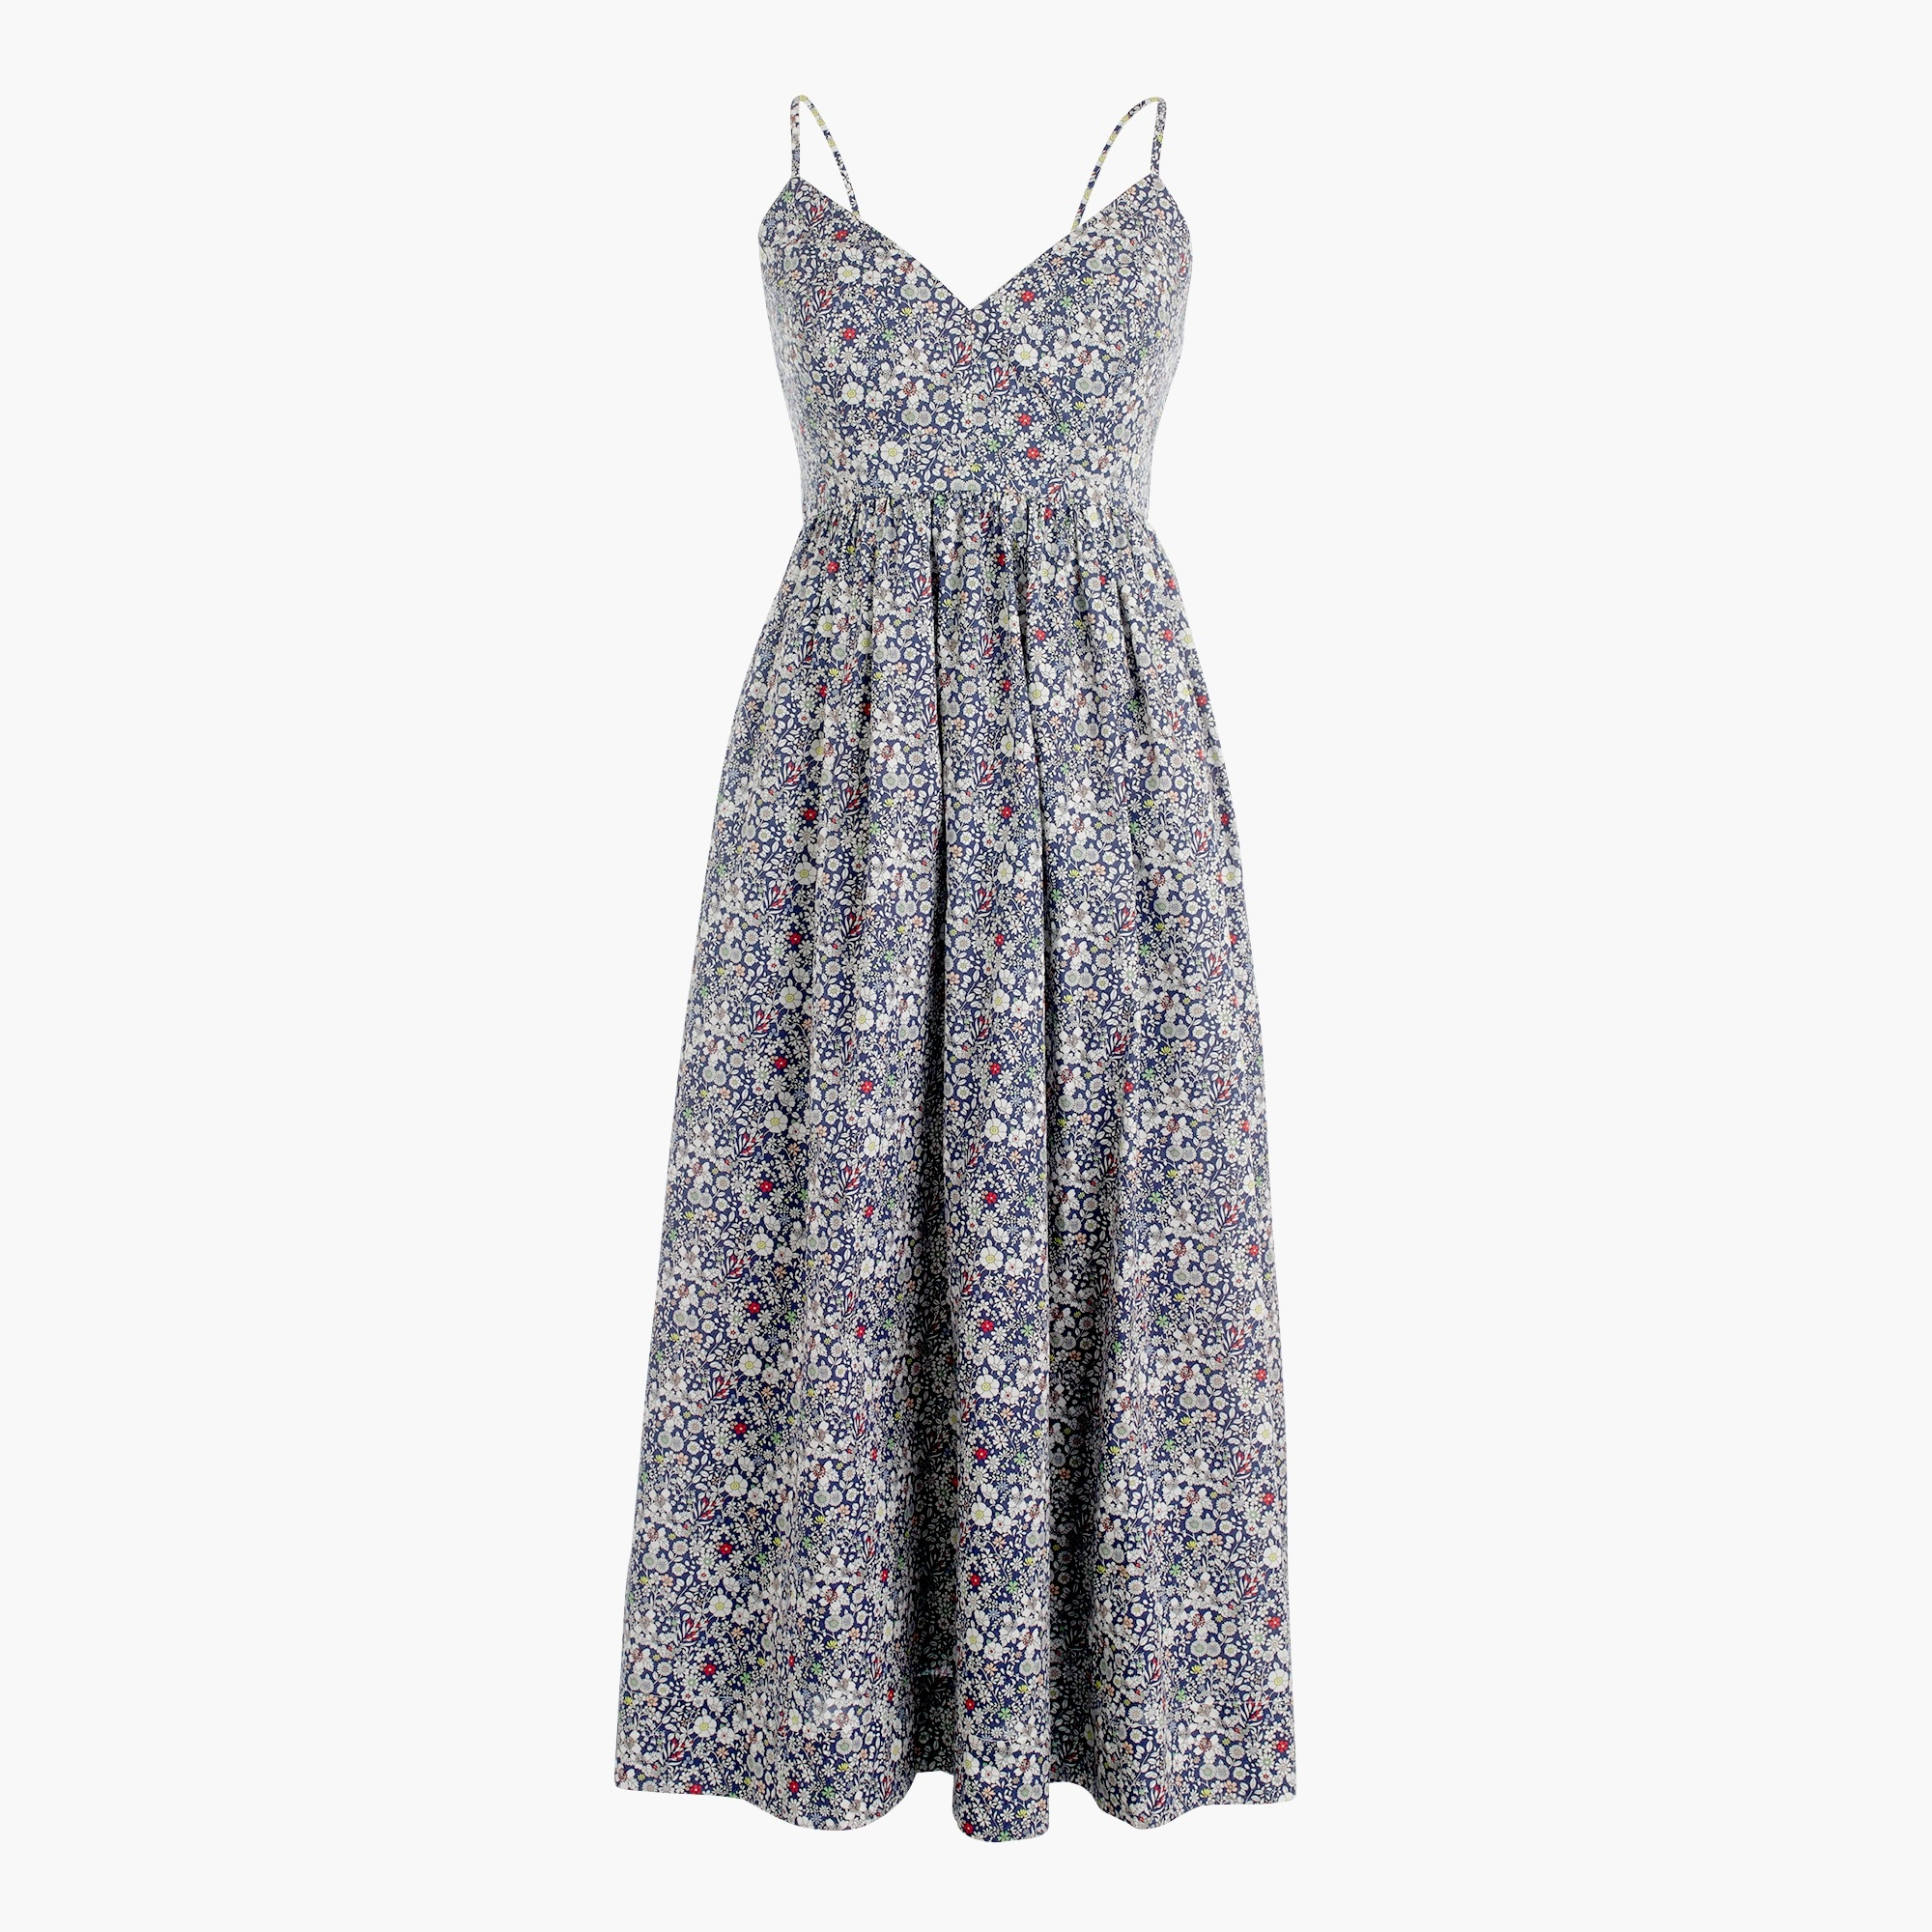 Image 2 for Spaghetti-strap dress in Liberty® June's Meadow floral